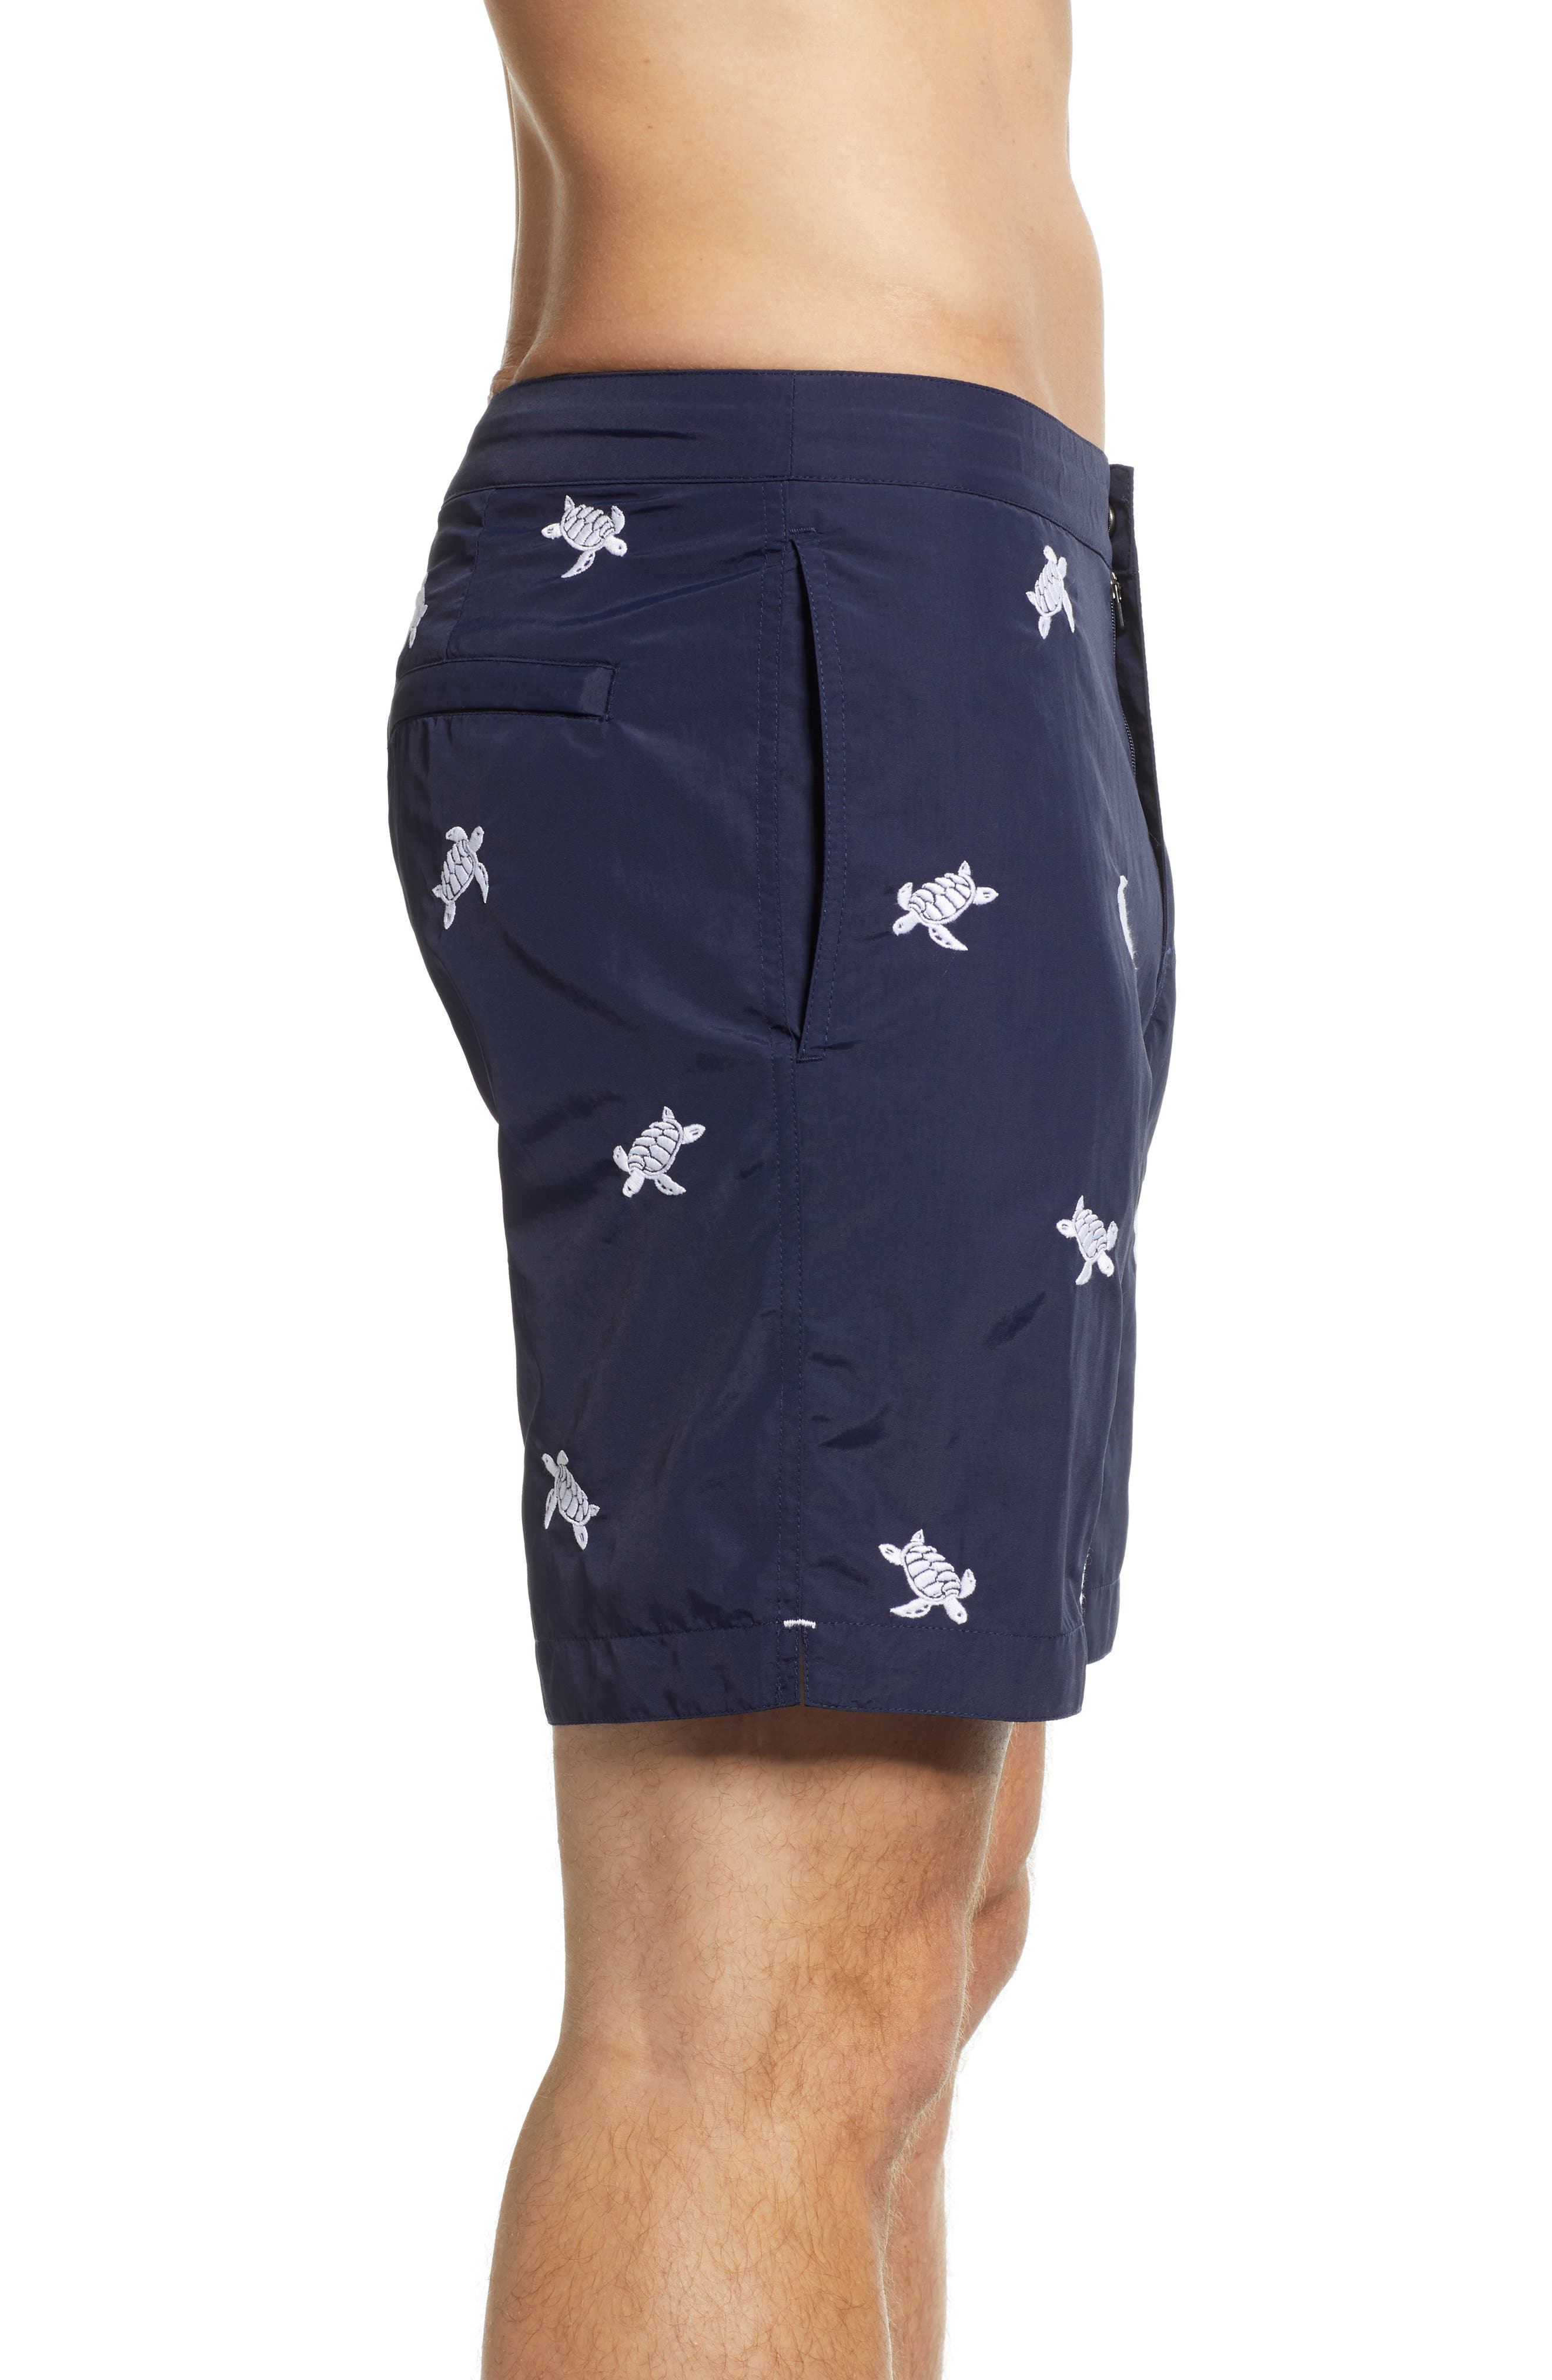 Aruba Embroidered 8.5 Inch Swim Trunks,                             Alternate thumbnail 3, color,                             NAVY EMBROIDERED TURTLES